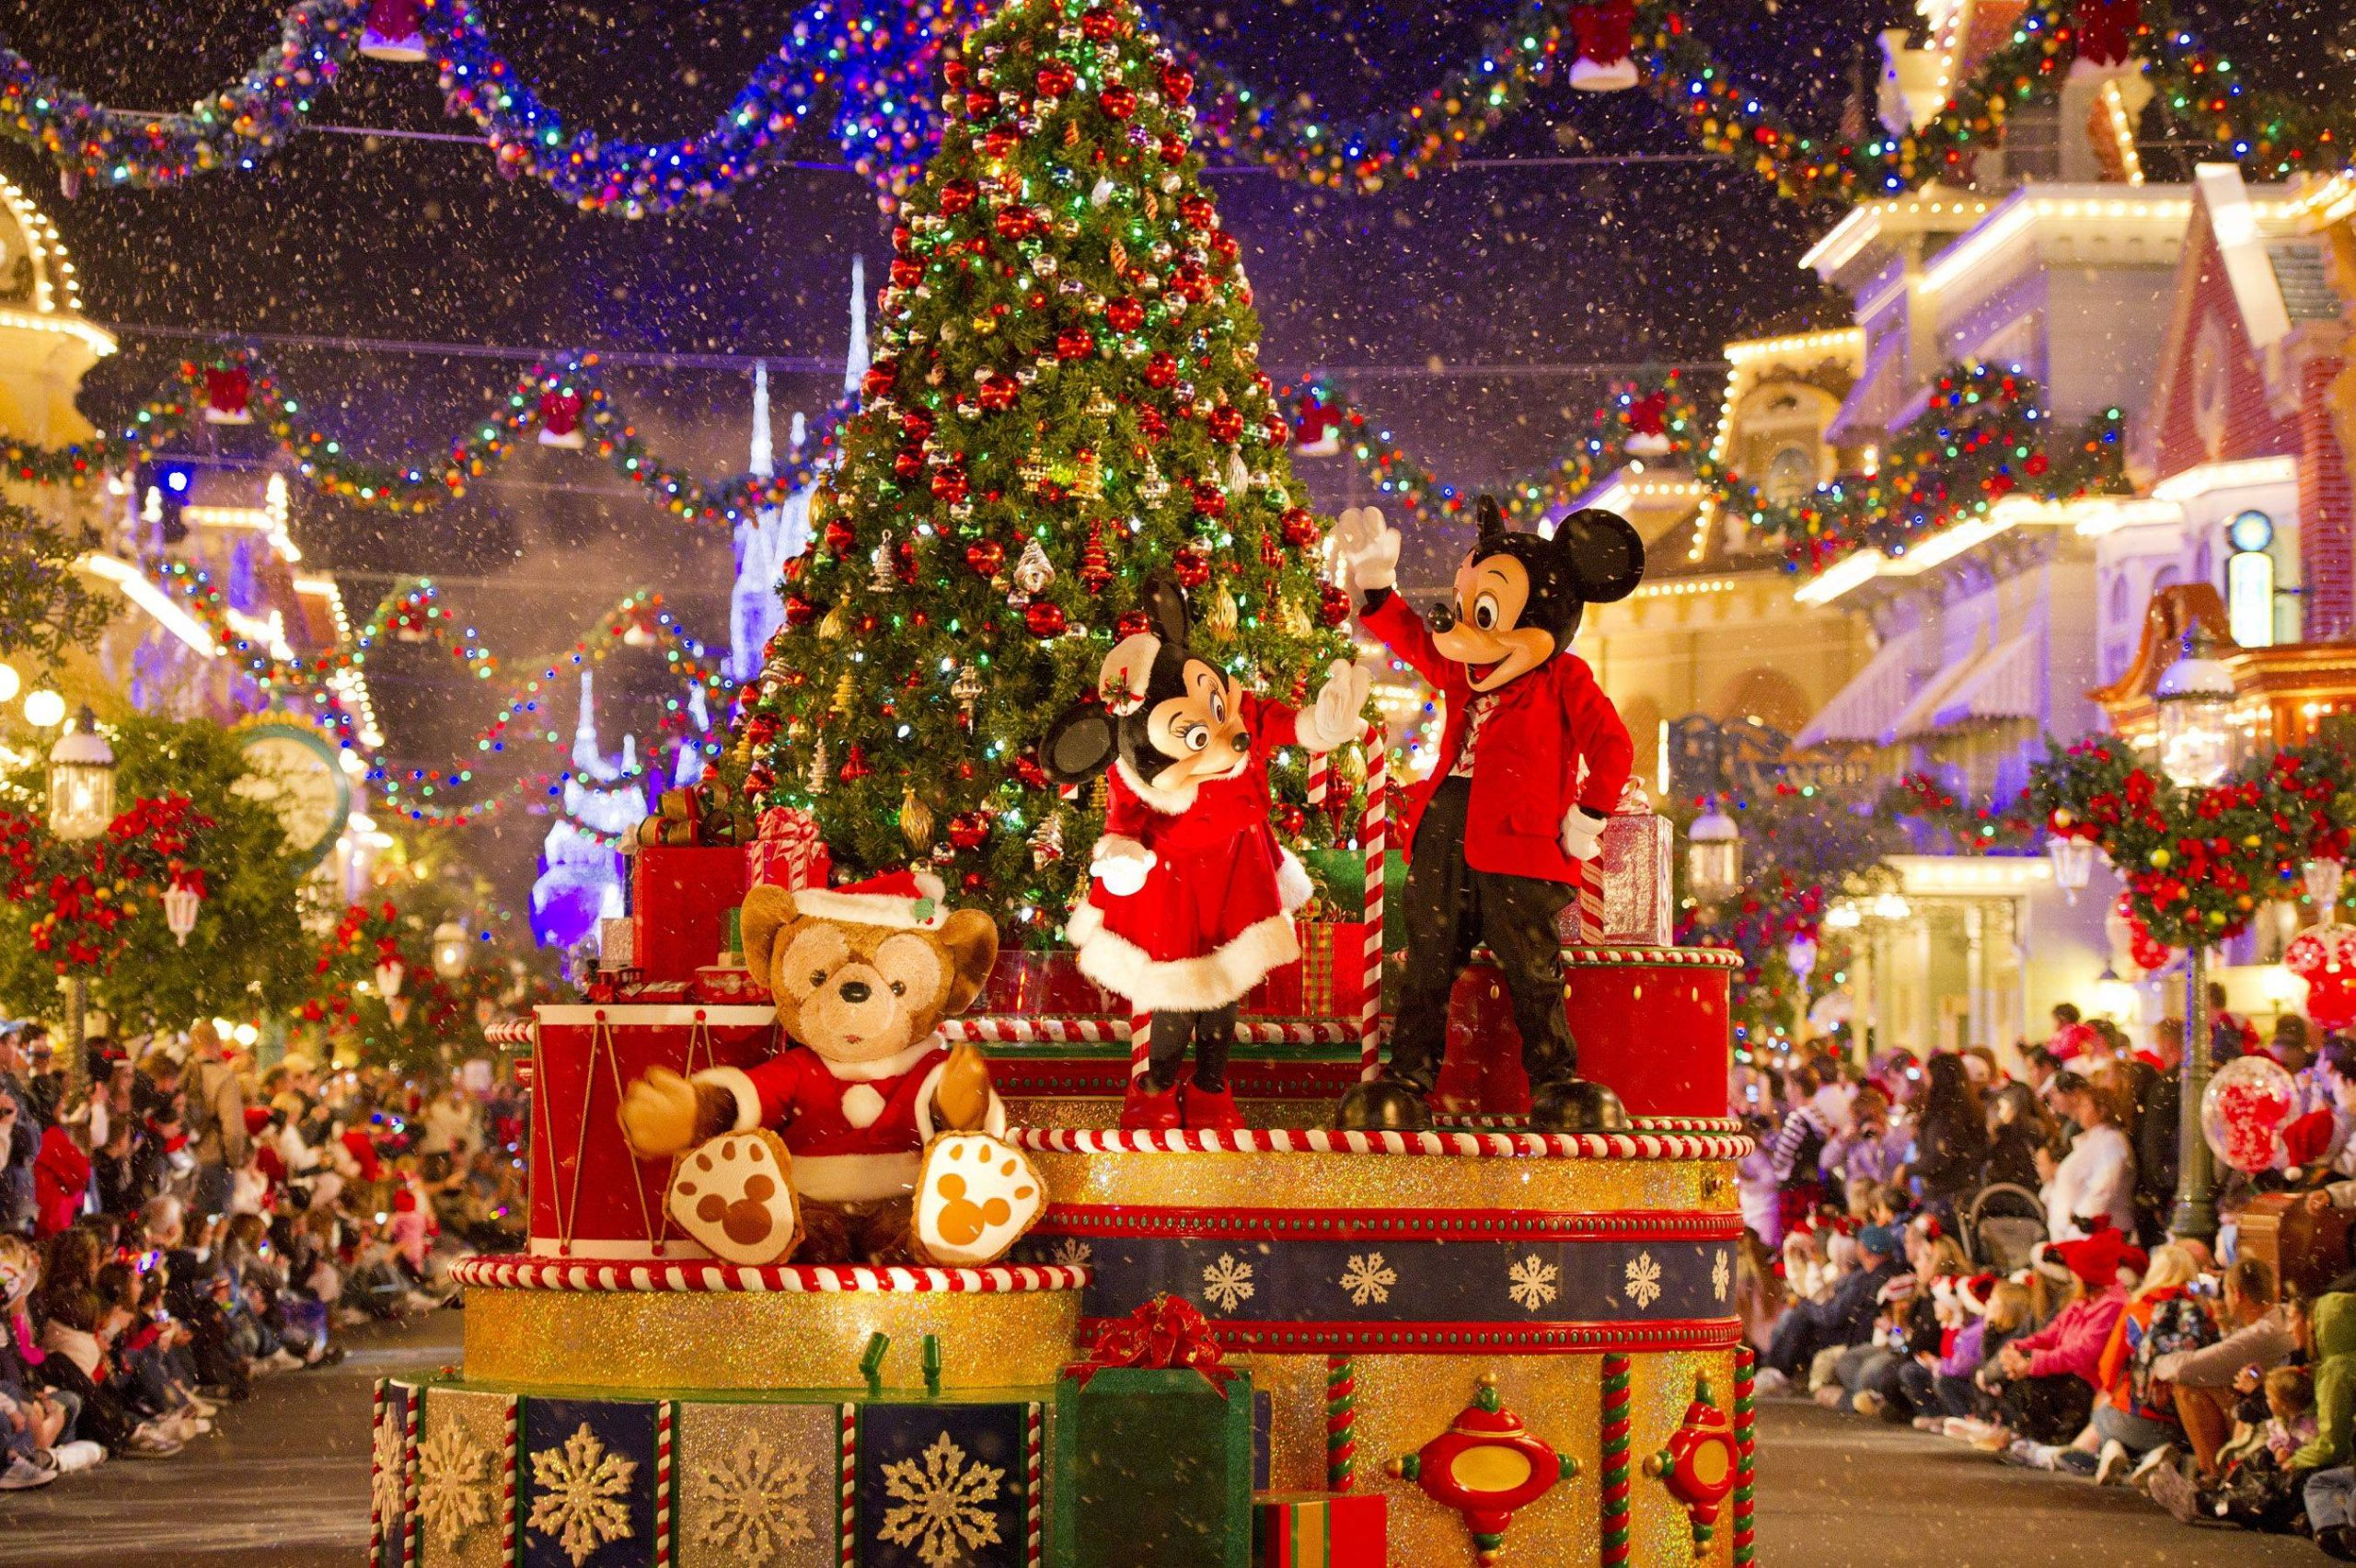 Disney Outdoor Christmas Decorations New We are the Prime Christmas Parties Planner at London as the